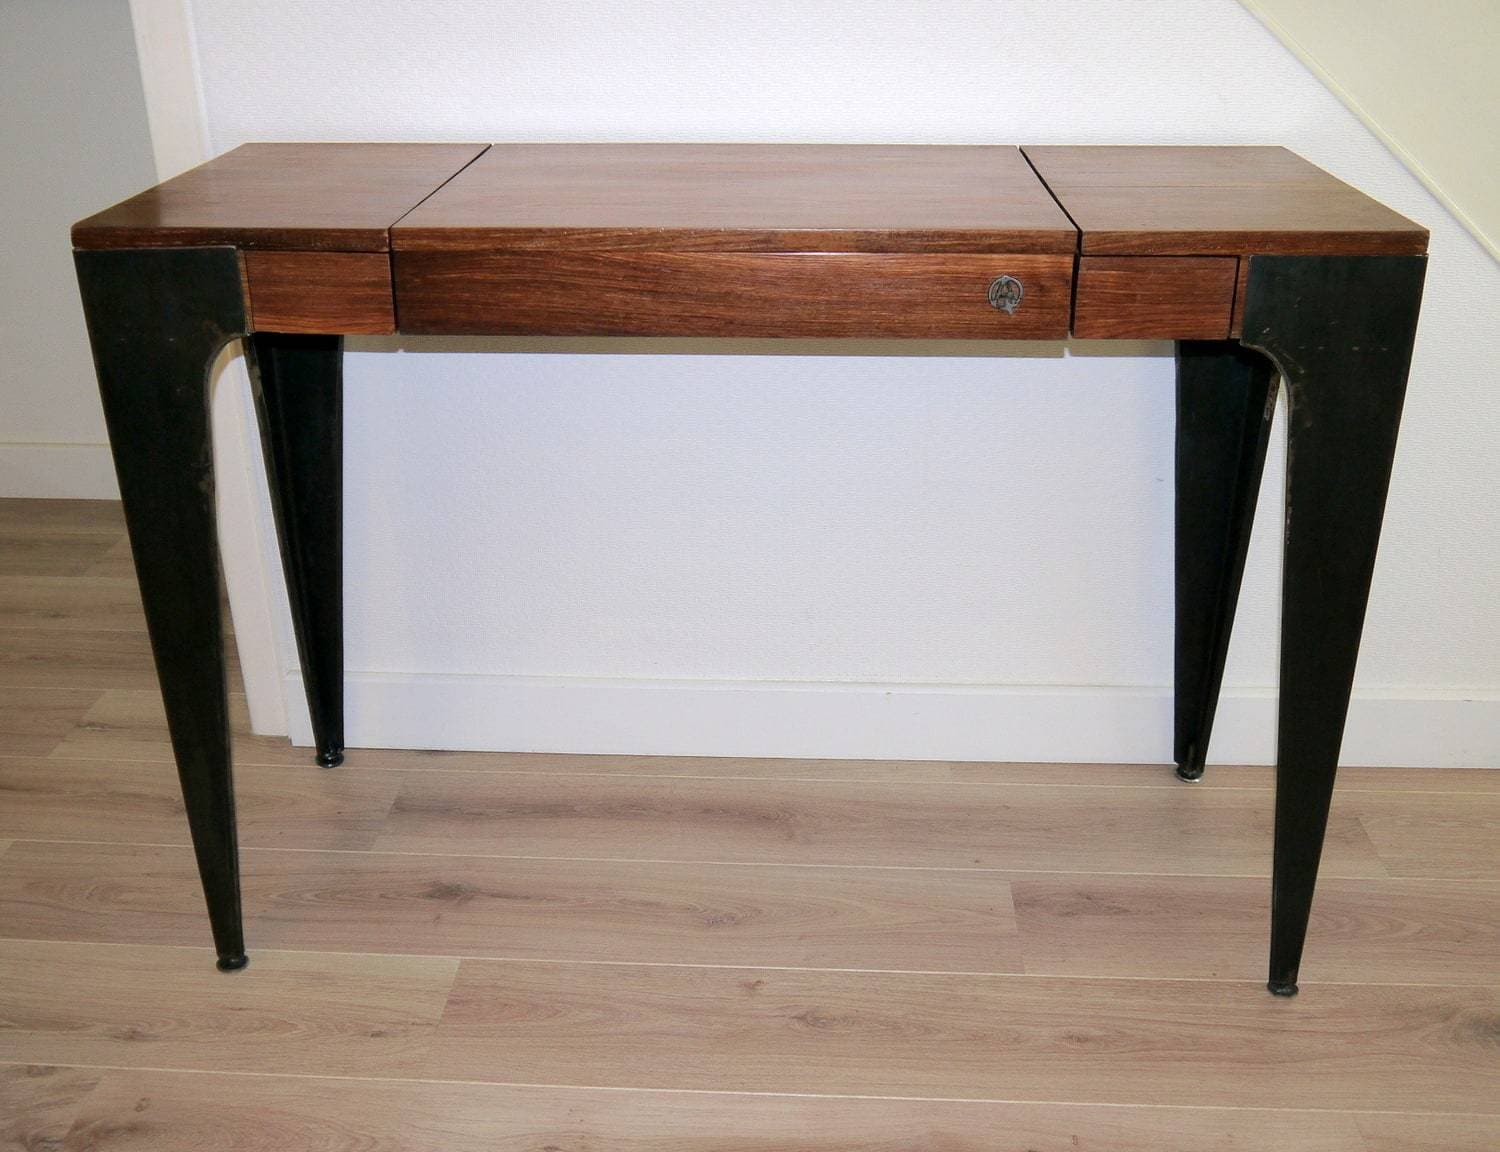 console de bureau gazelle en bois massif et t le brute. Black Bedroom Furniture Sets. Home Design Ideas